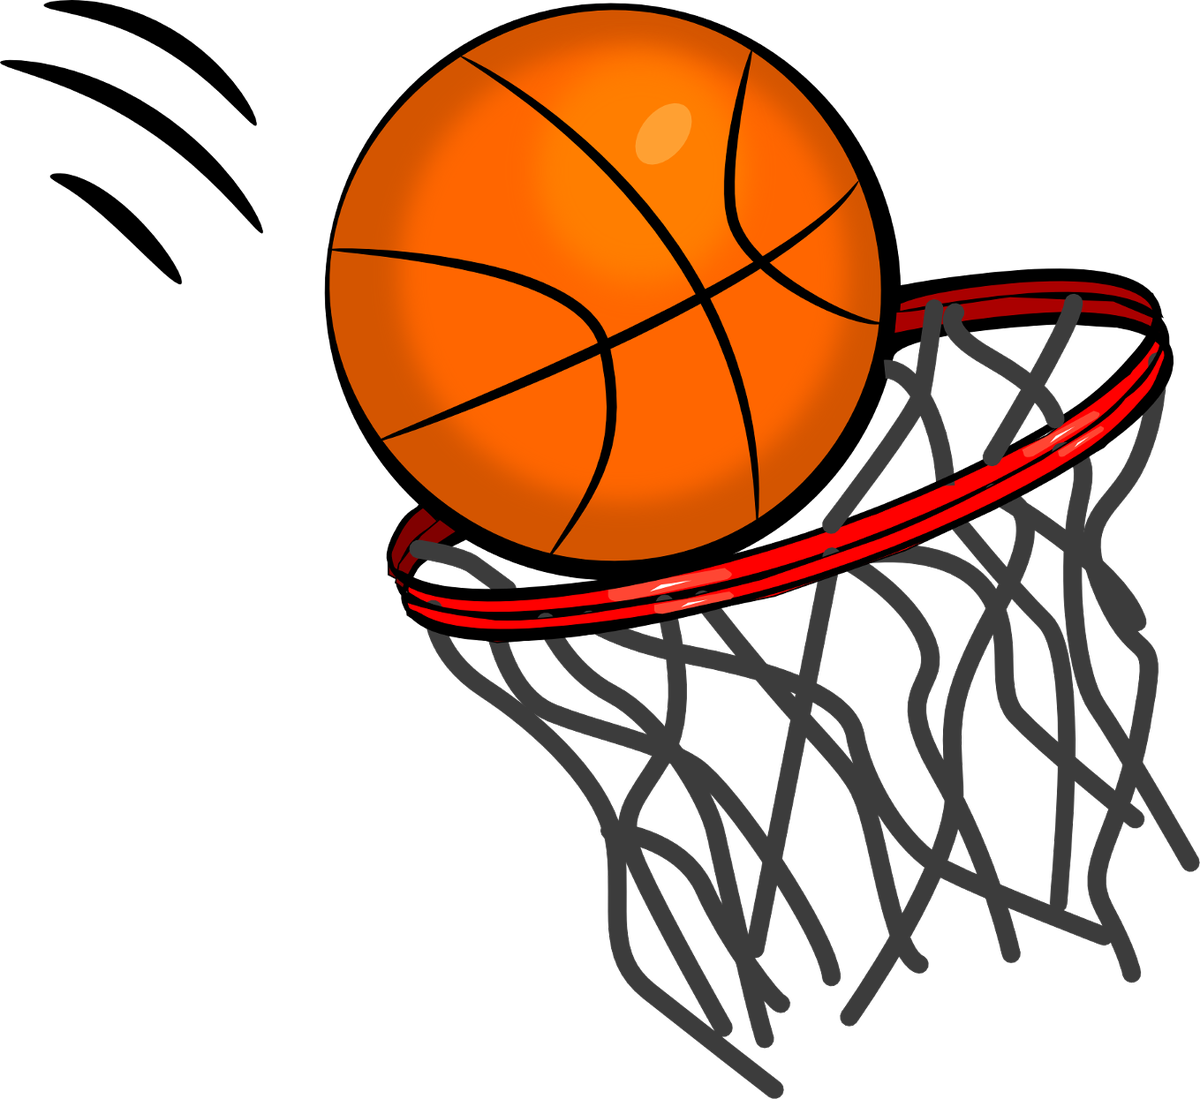 Basketball going in hoop clipart png freeuse library Nicholas Sheran Sch. on Twitter: